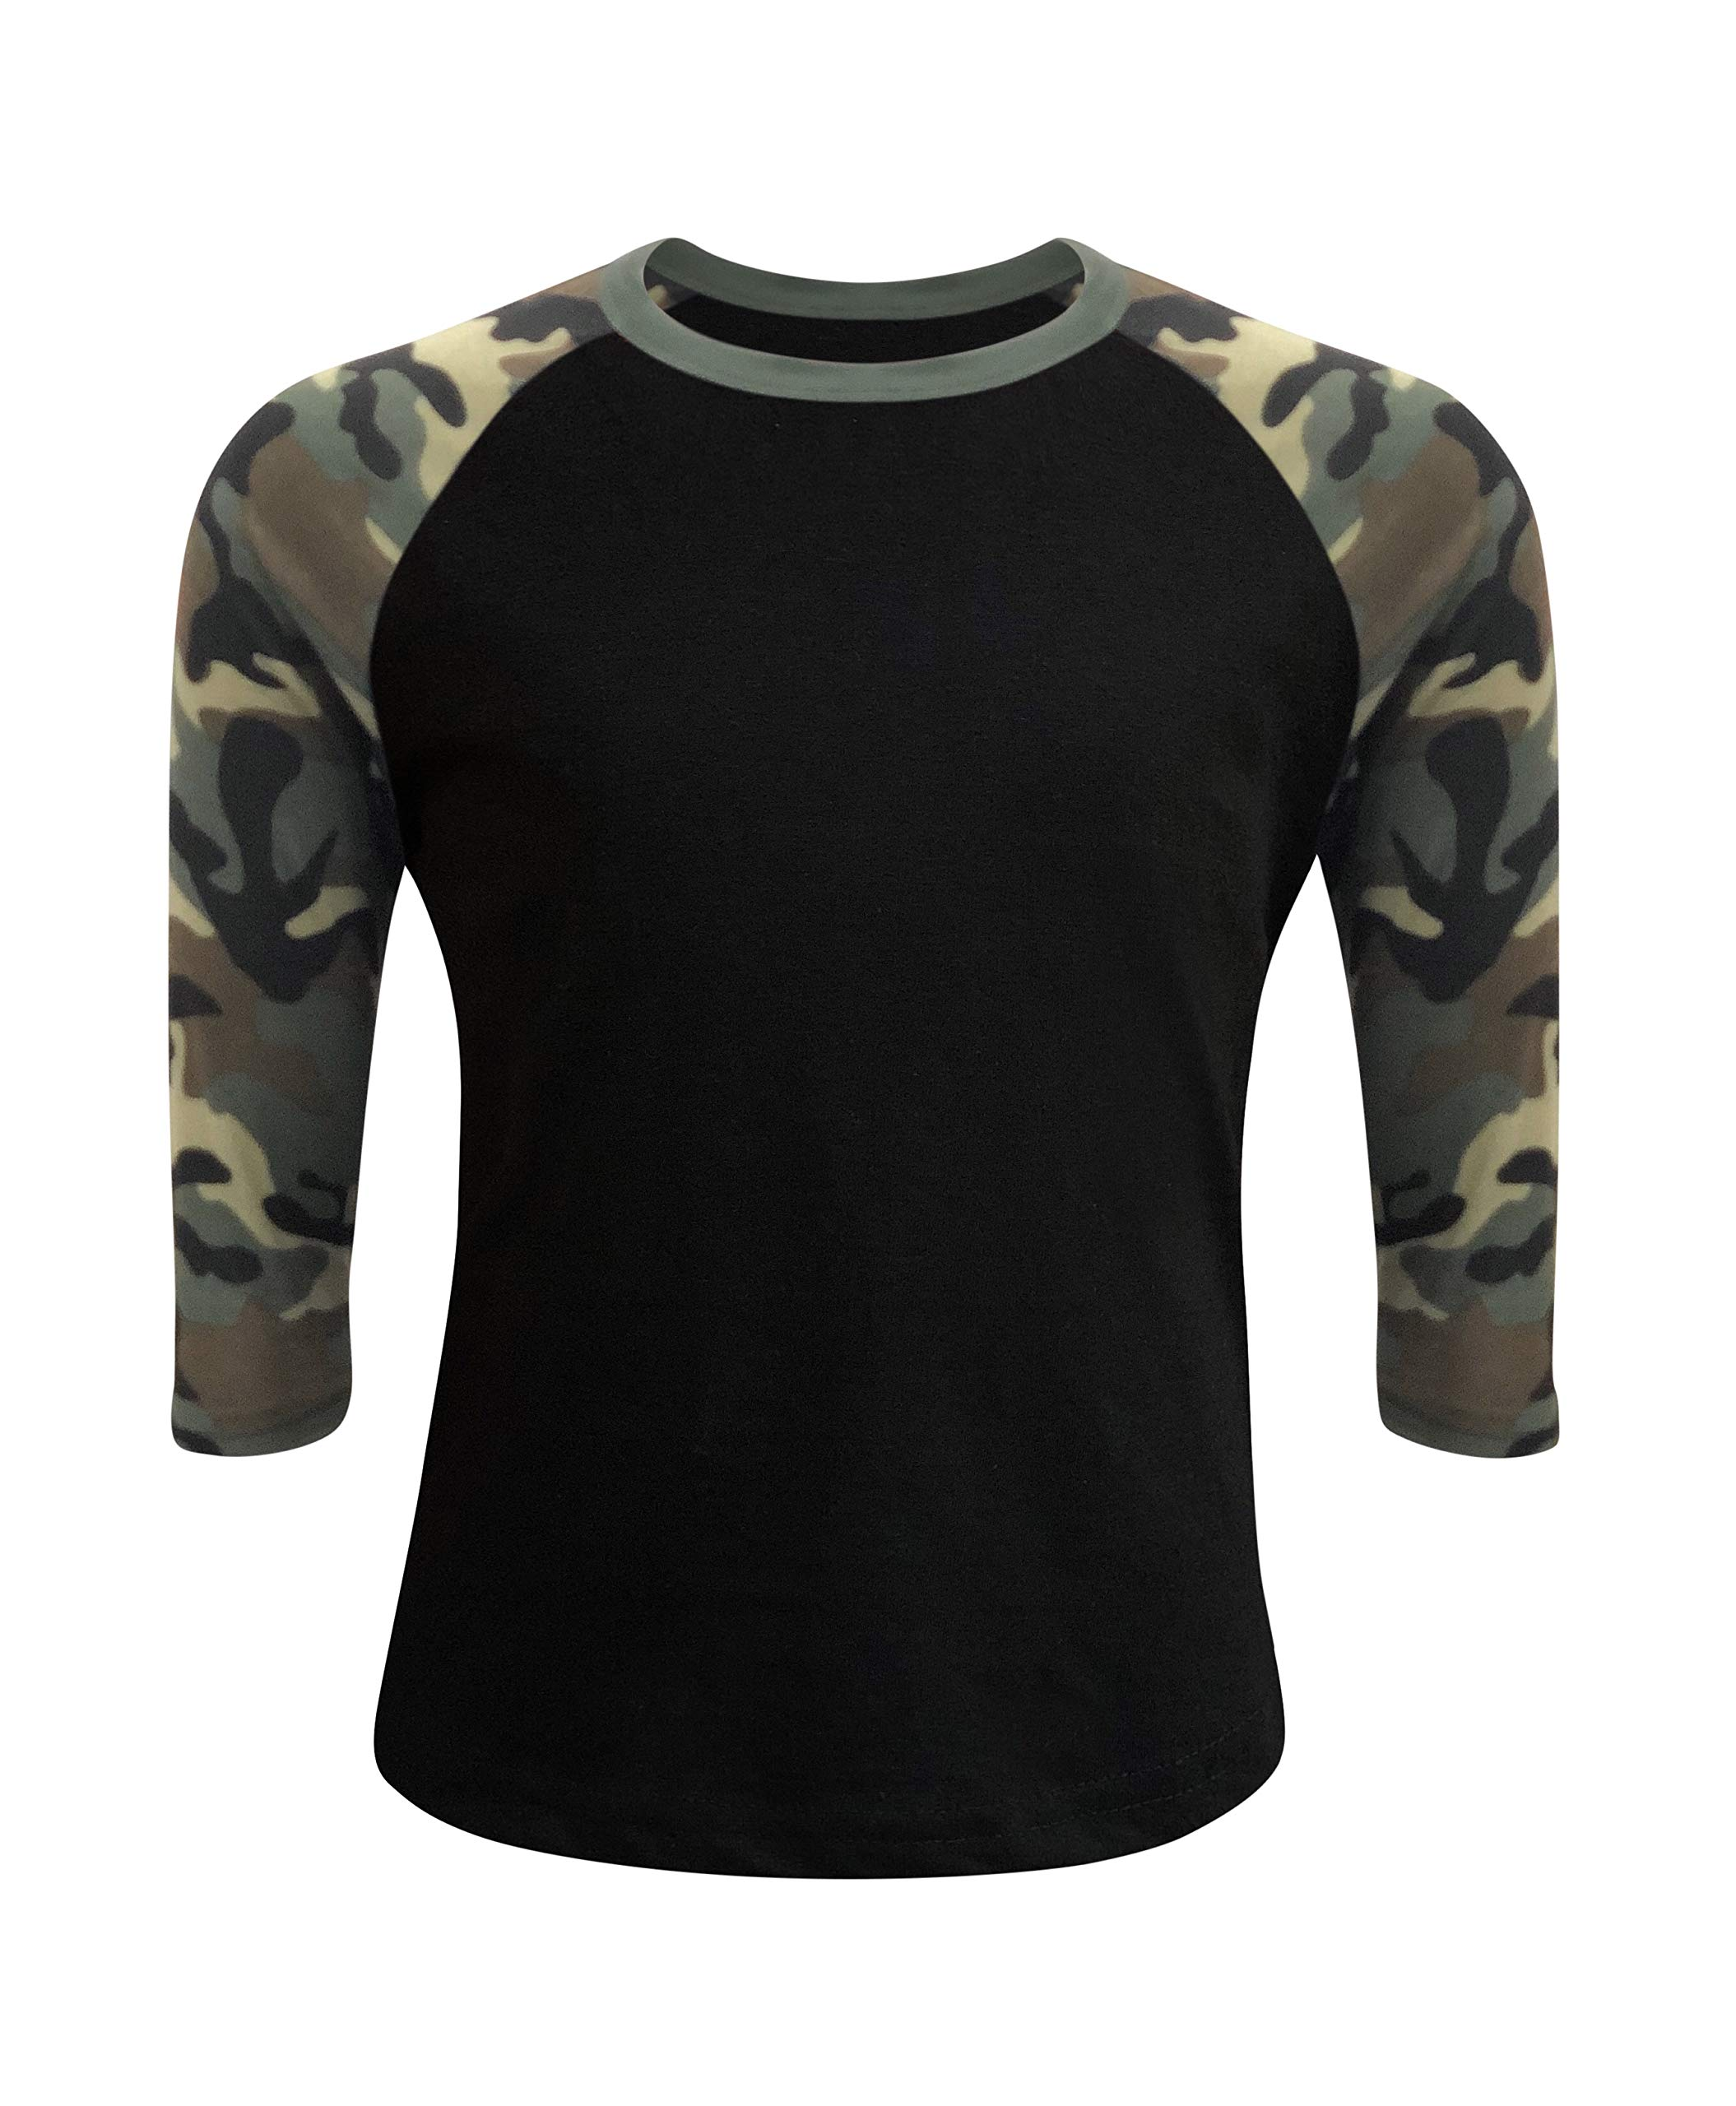 ILTEX Kids & Youth Baseball Raglan T-Shirt 3/4 Sleeve Infant Toddler Youth Athletic Jersey Sports Casual (20+ Colors) (12 Months, Black/Camo)